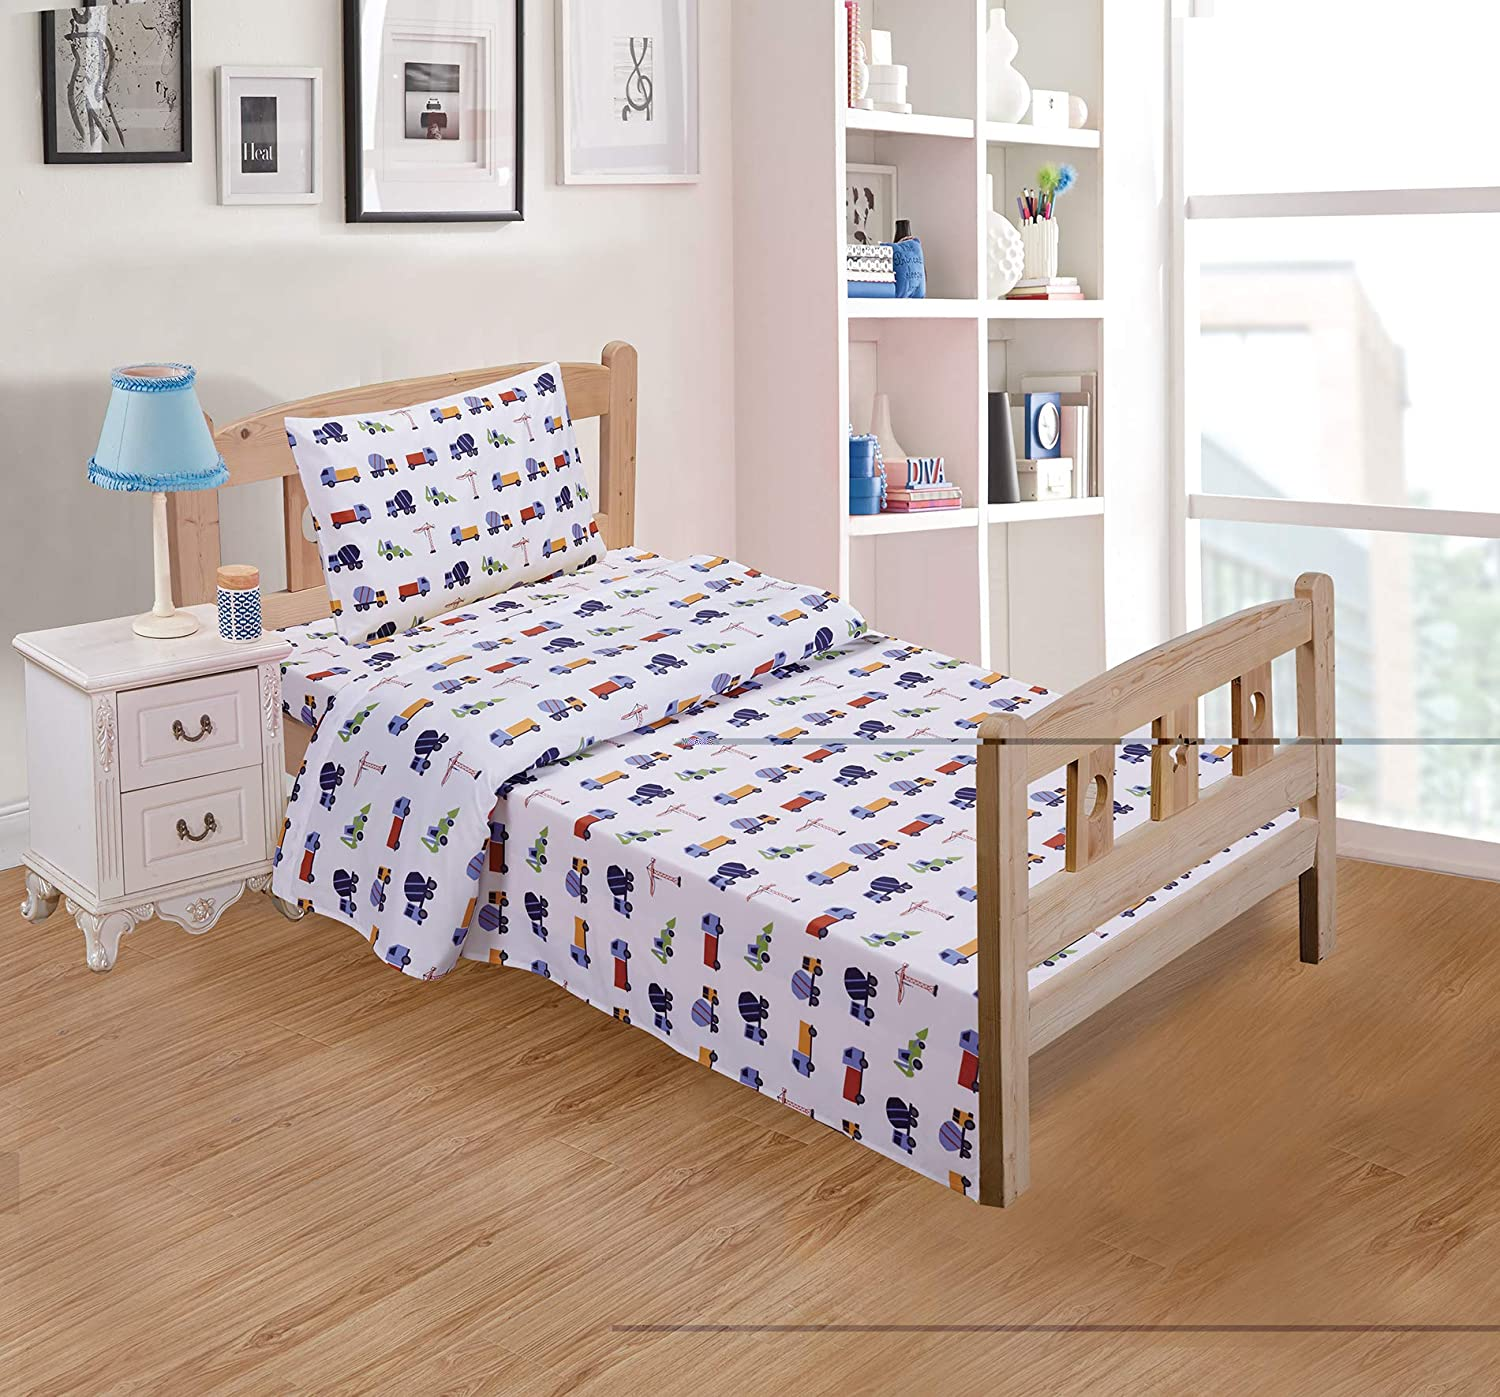 Luxury Home Collection 3 Piece Crib Sheet Set Construction Vehicles Trucks Cement Blue Red White Green Yellow (Crib Sheet)